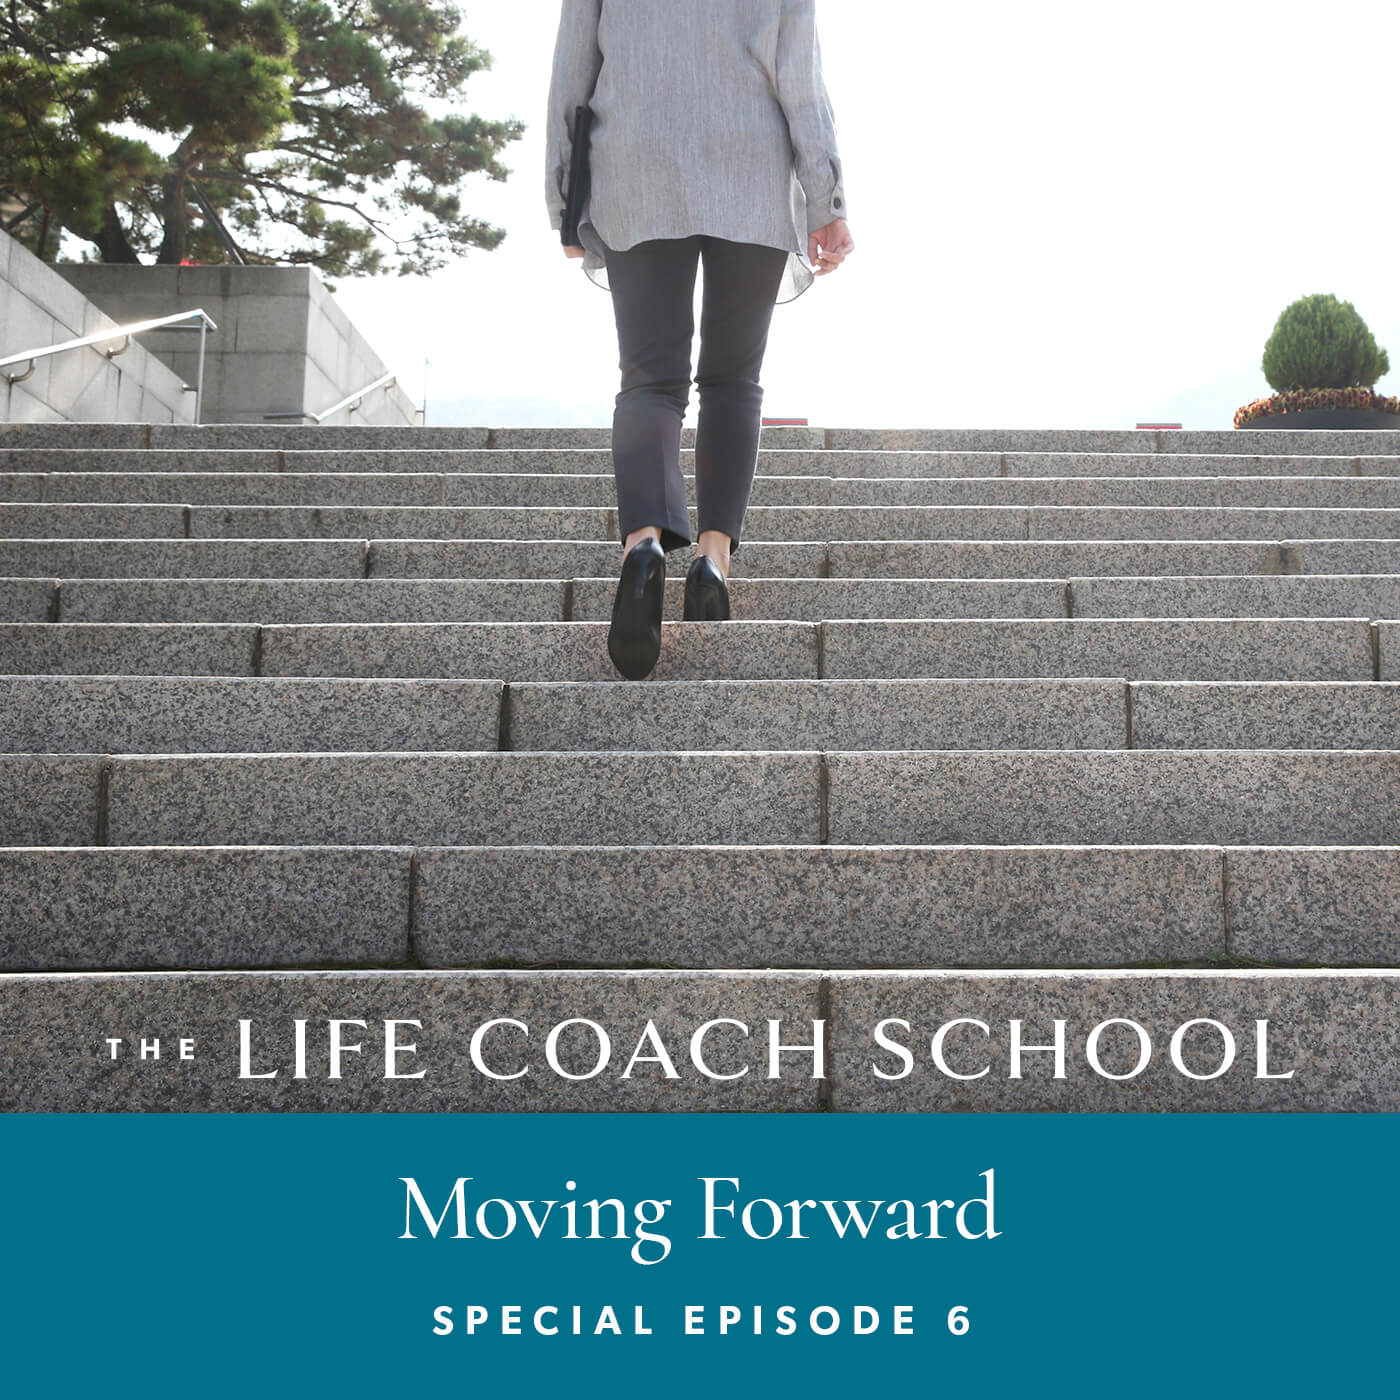 The Life Coach School Podcast with Brooke Castillo | Special Episode | Moving Forward 6